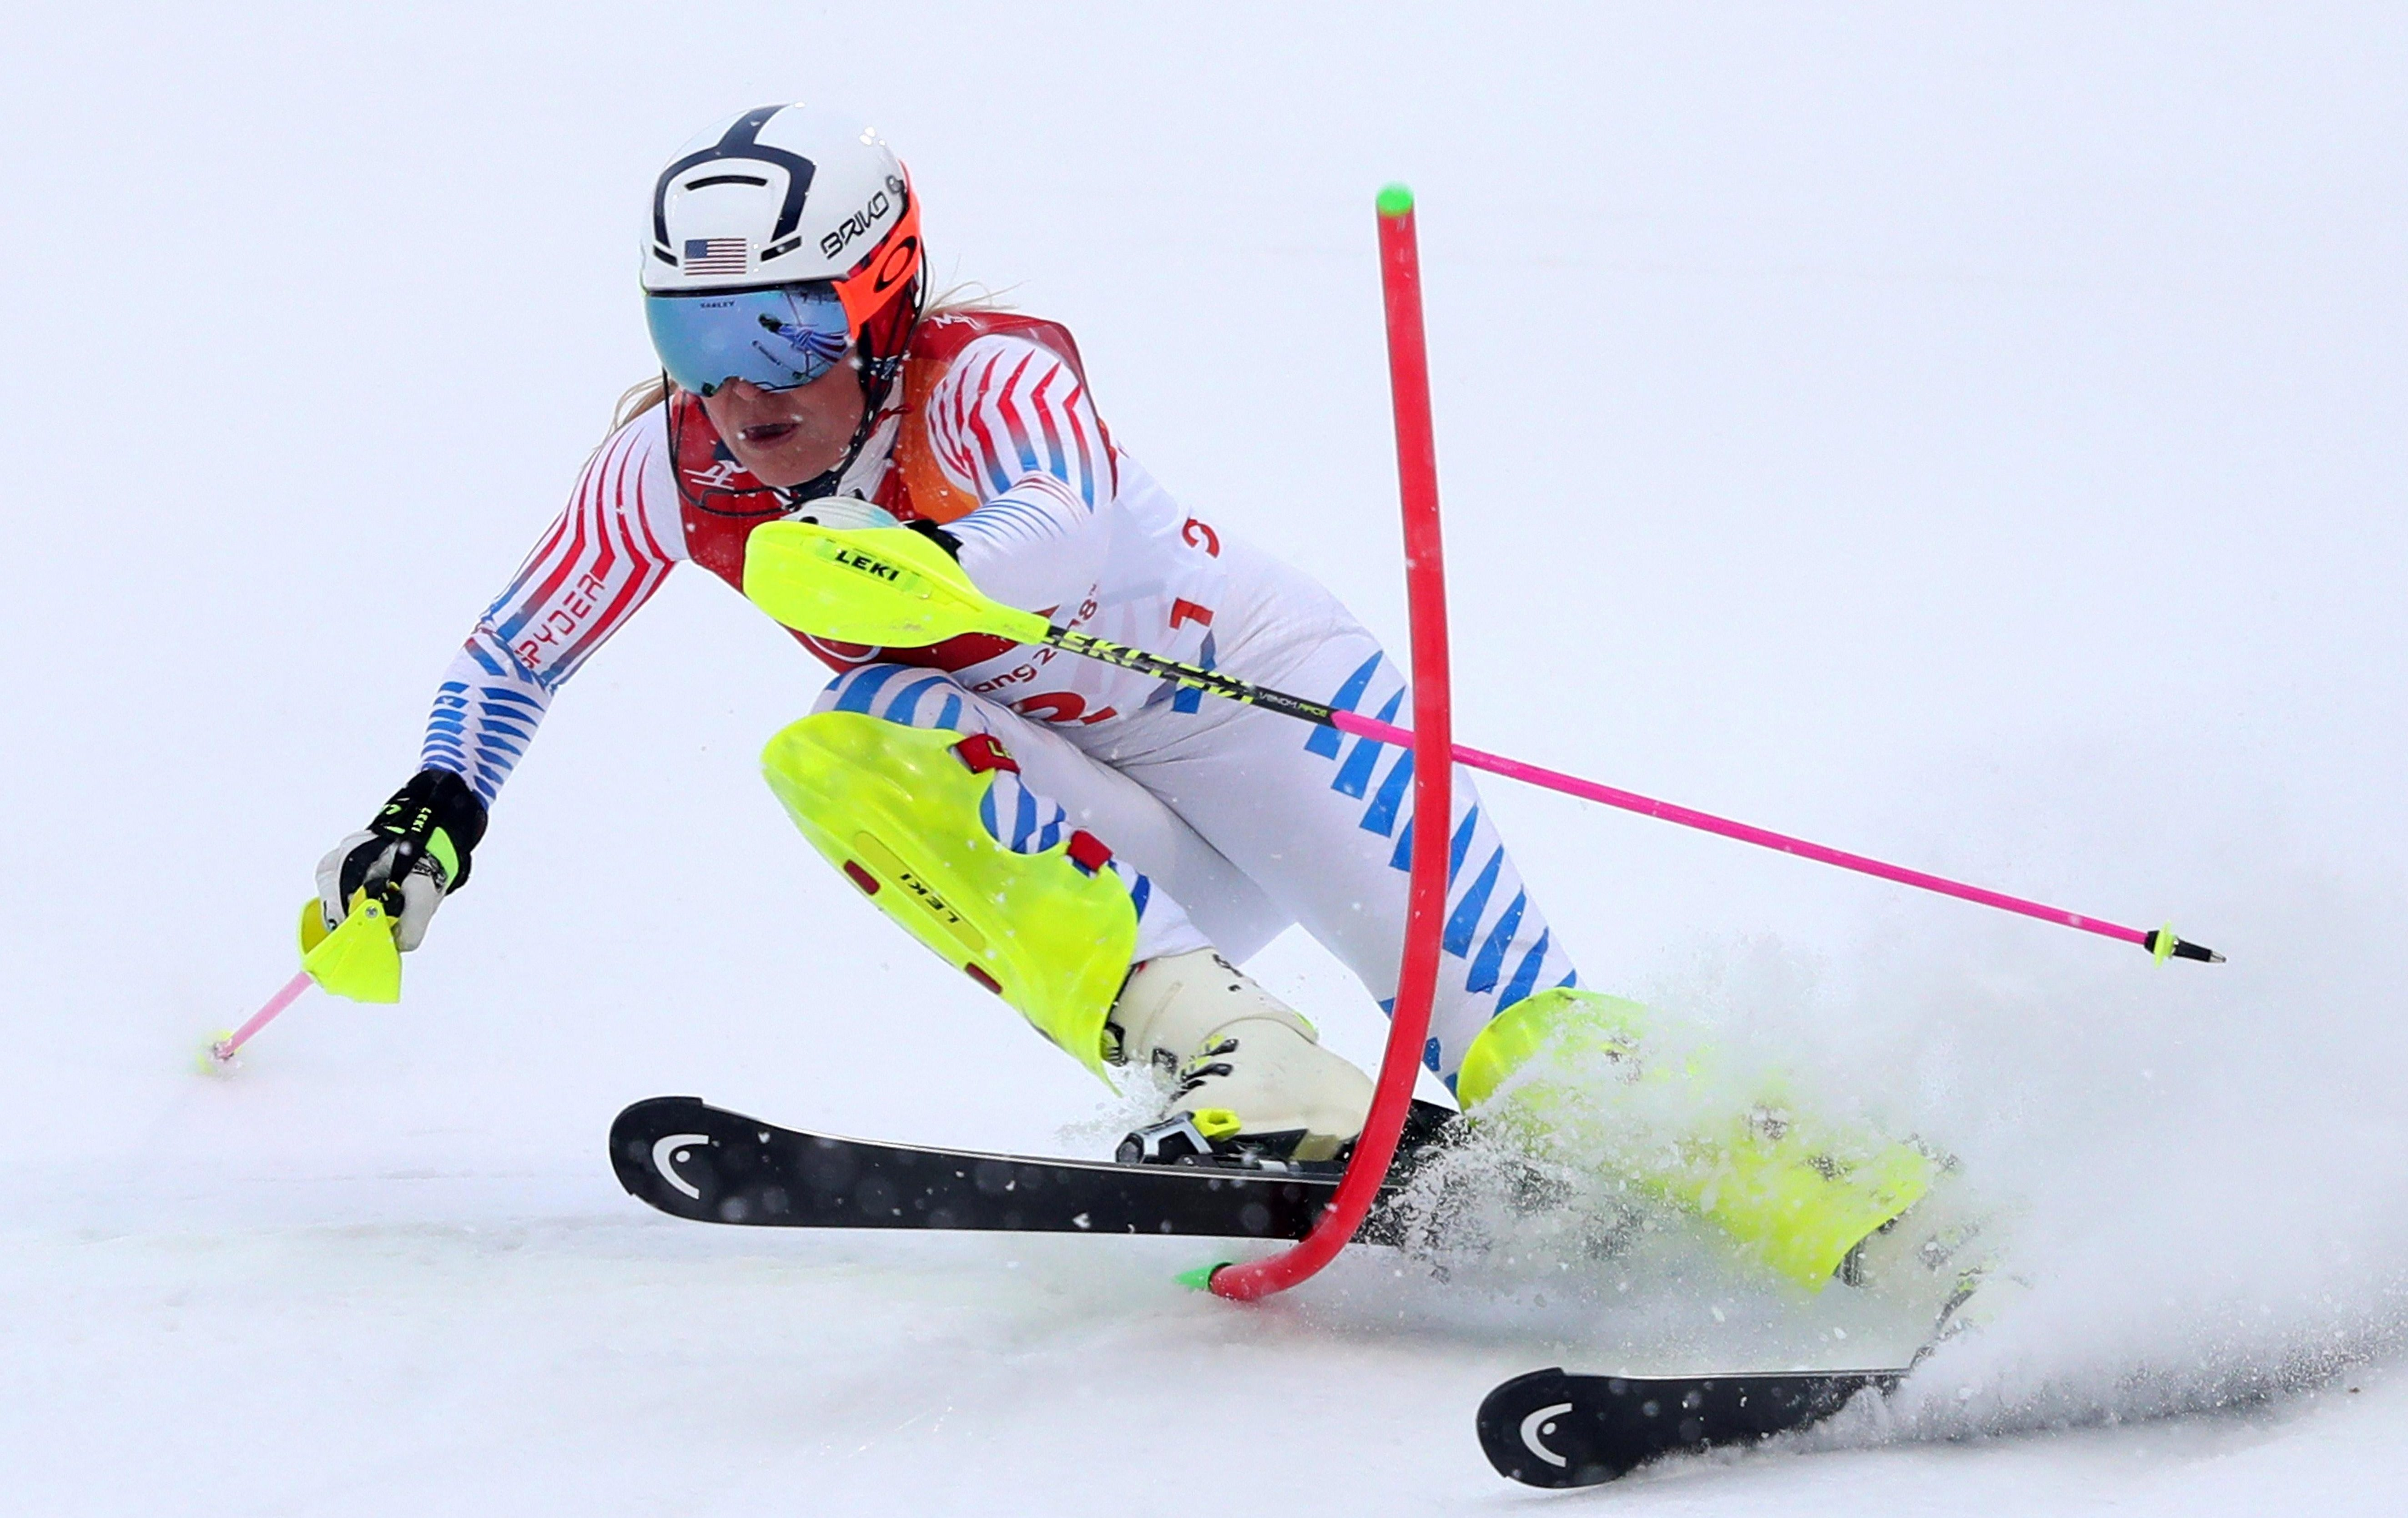 Lindsey Vonn was supported by her grandfather throughout her skiing career